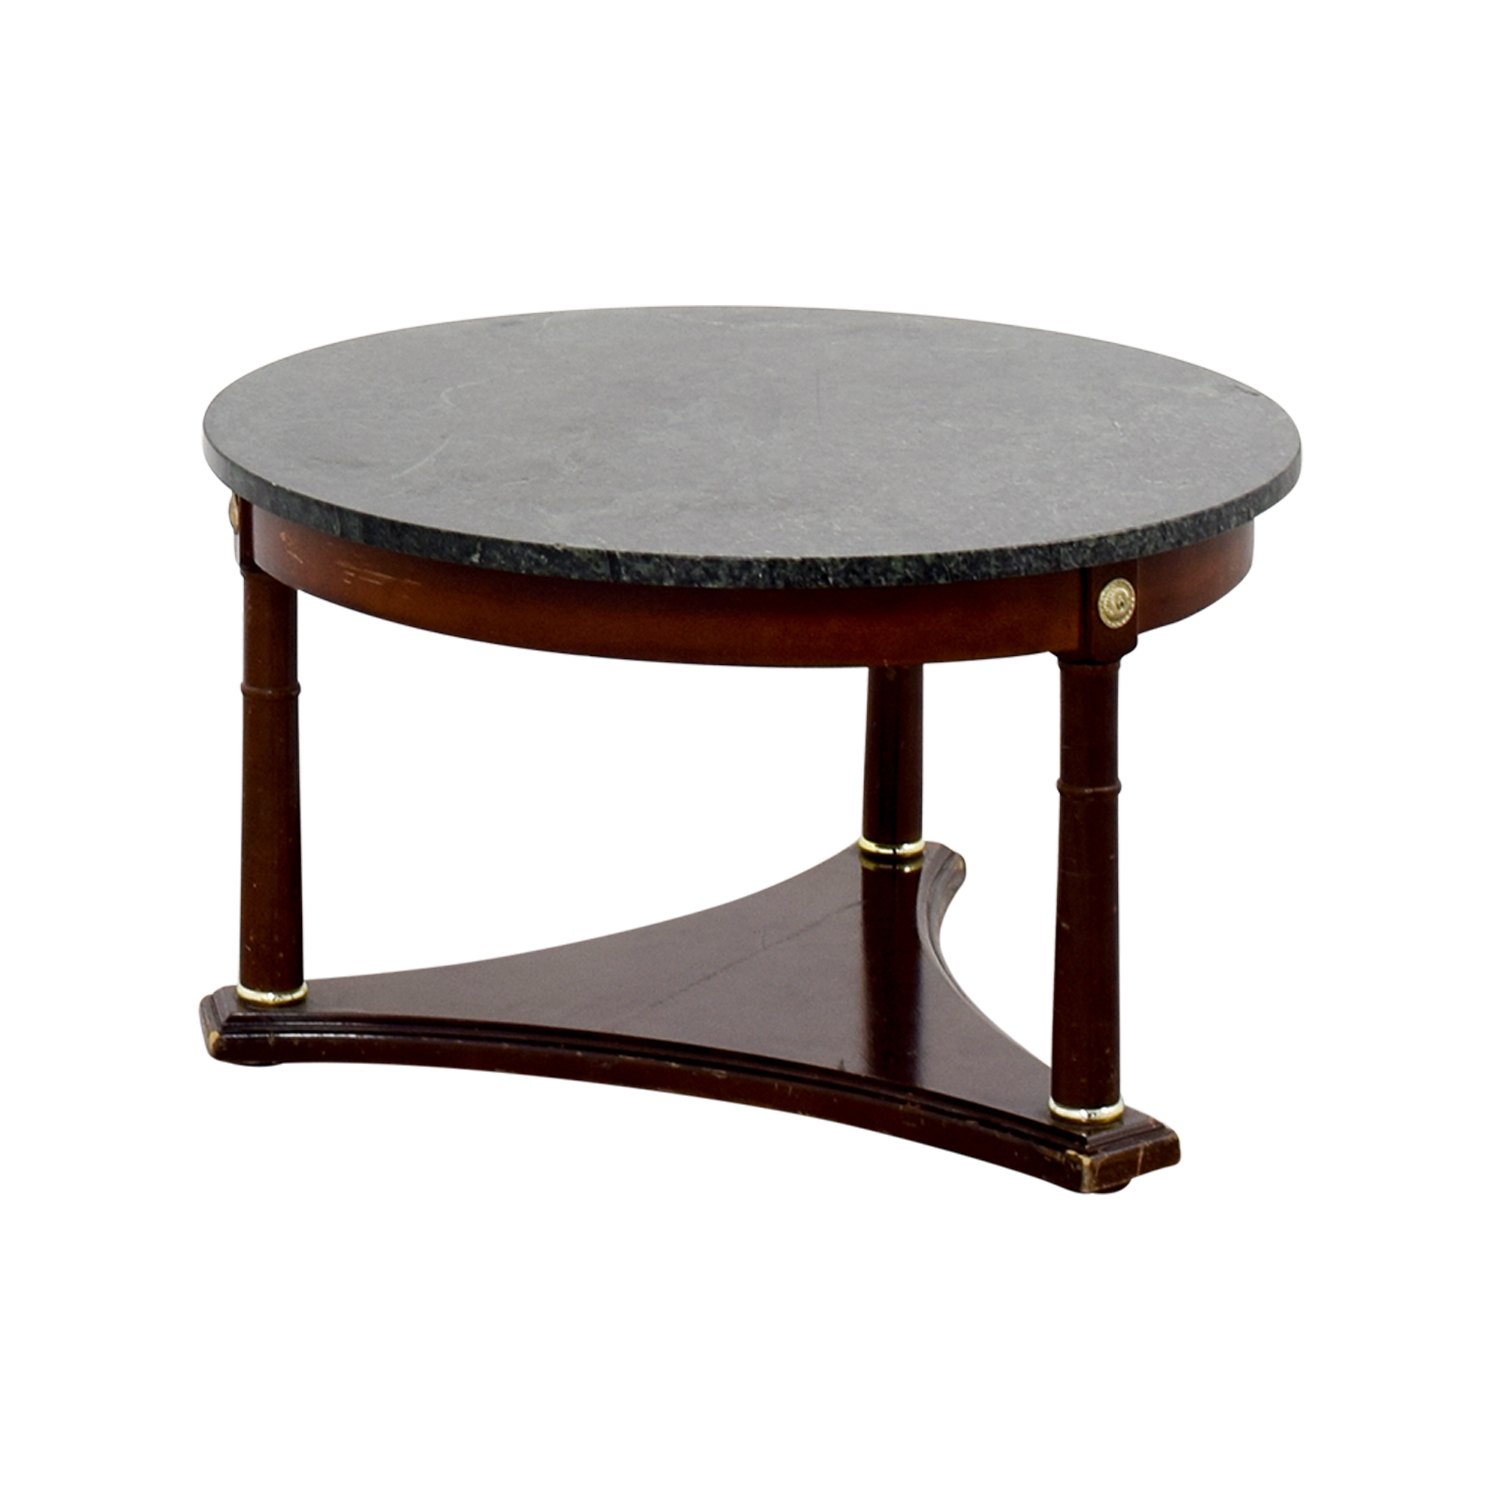 66% OFF Green Marble Side Table Tables